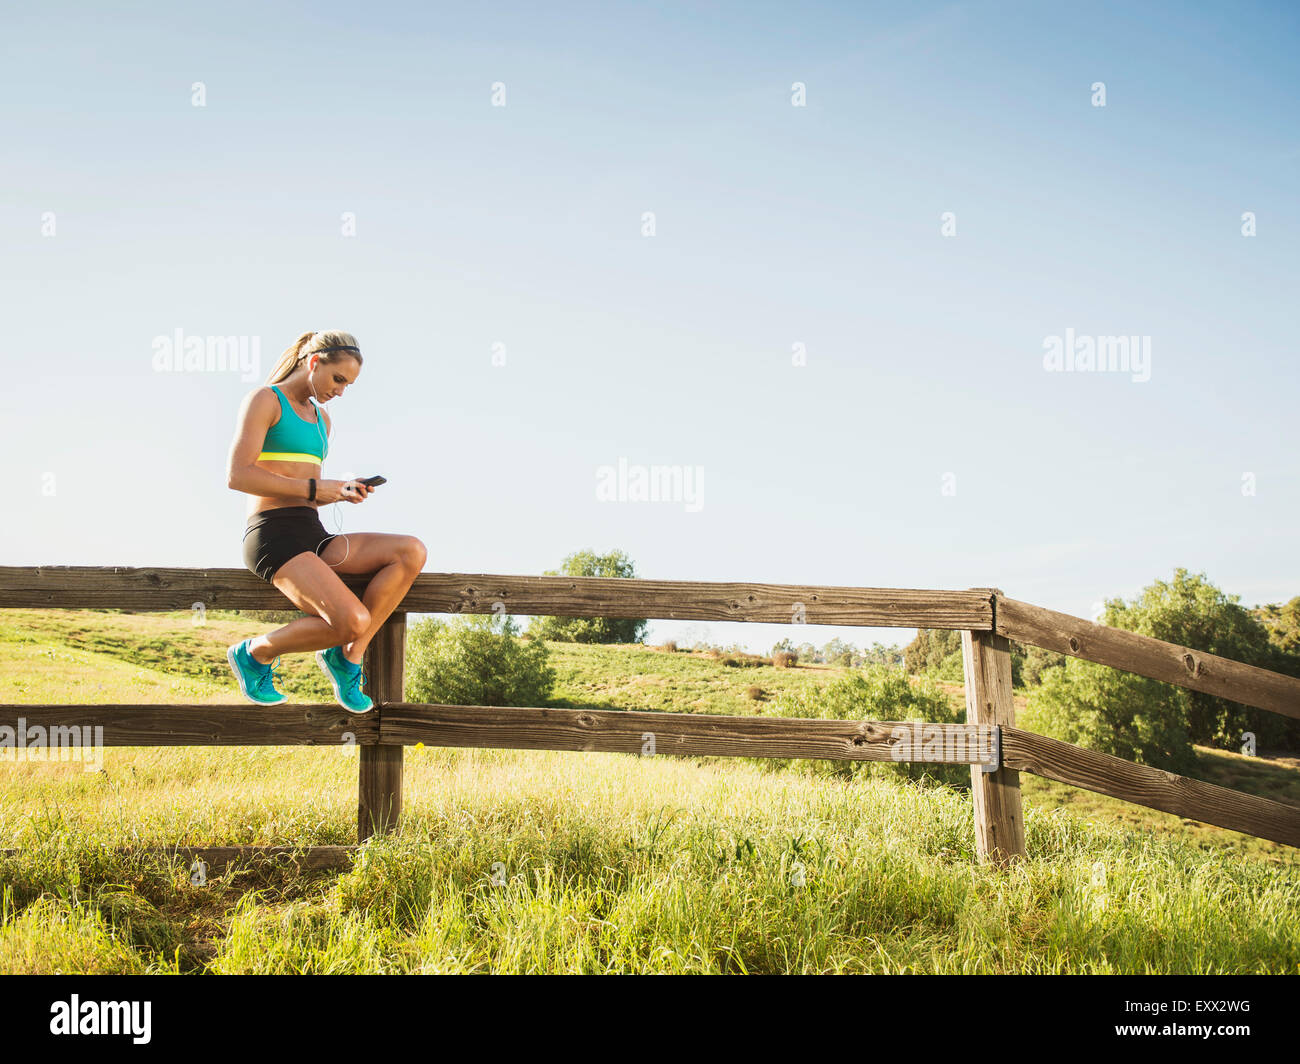 Woman sitting on fence, using smart phone - Stock Image